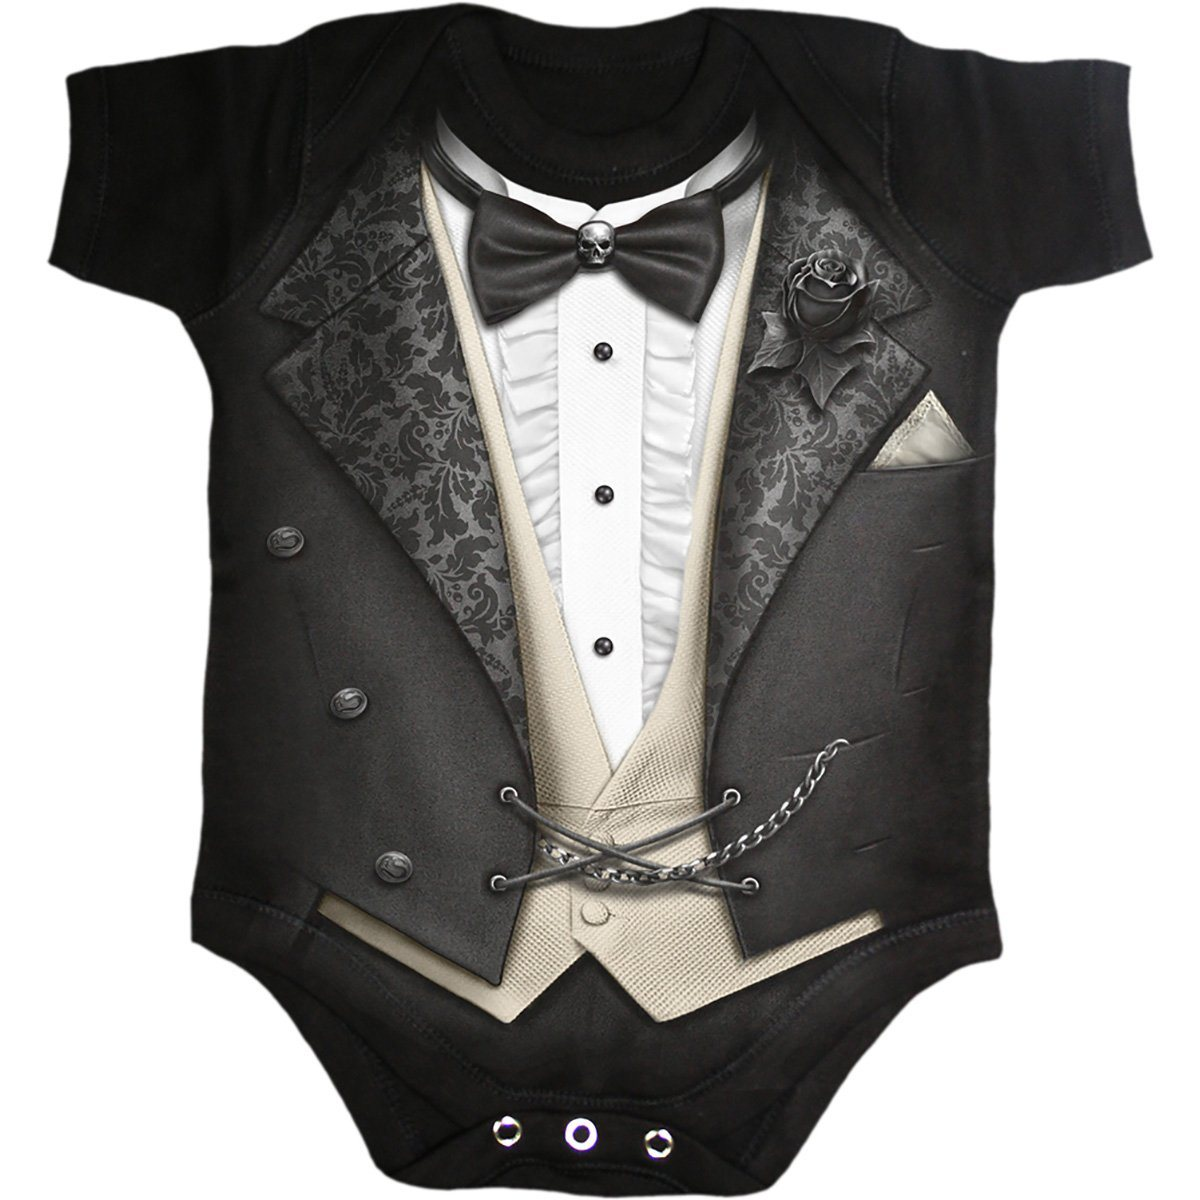 TUXED - Bowtie and Black Rose Baby Onesie - Rebels Depot